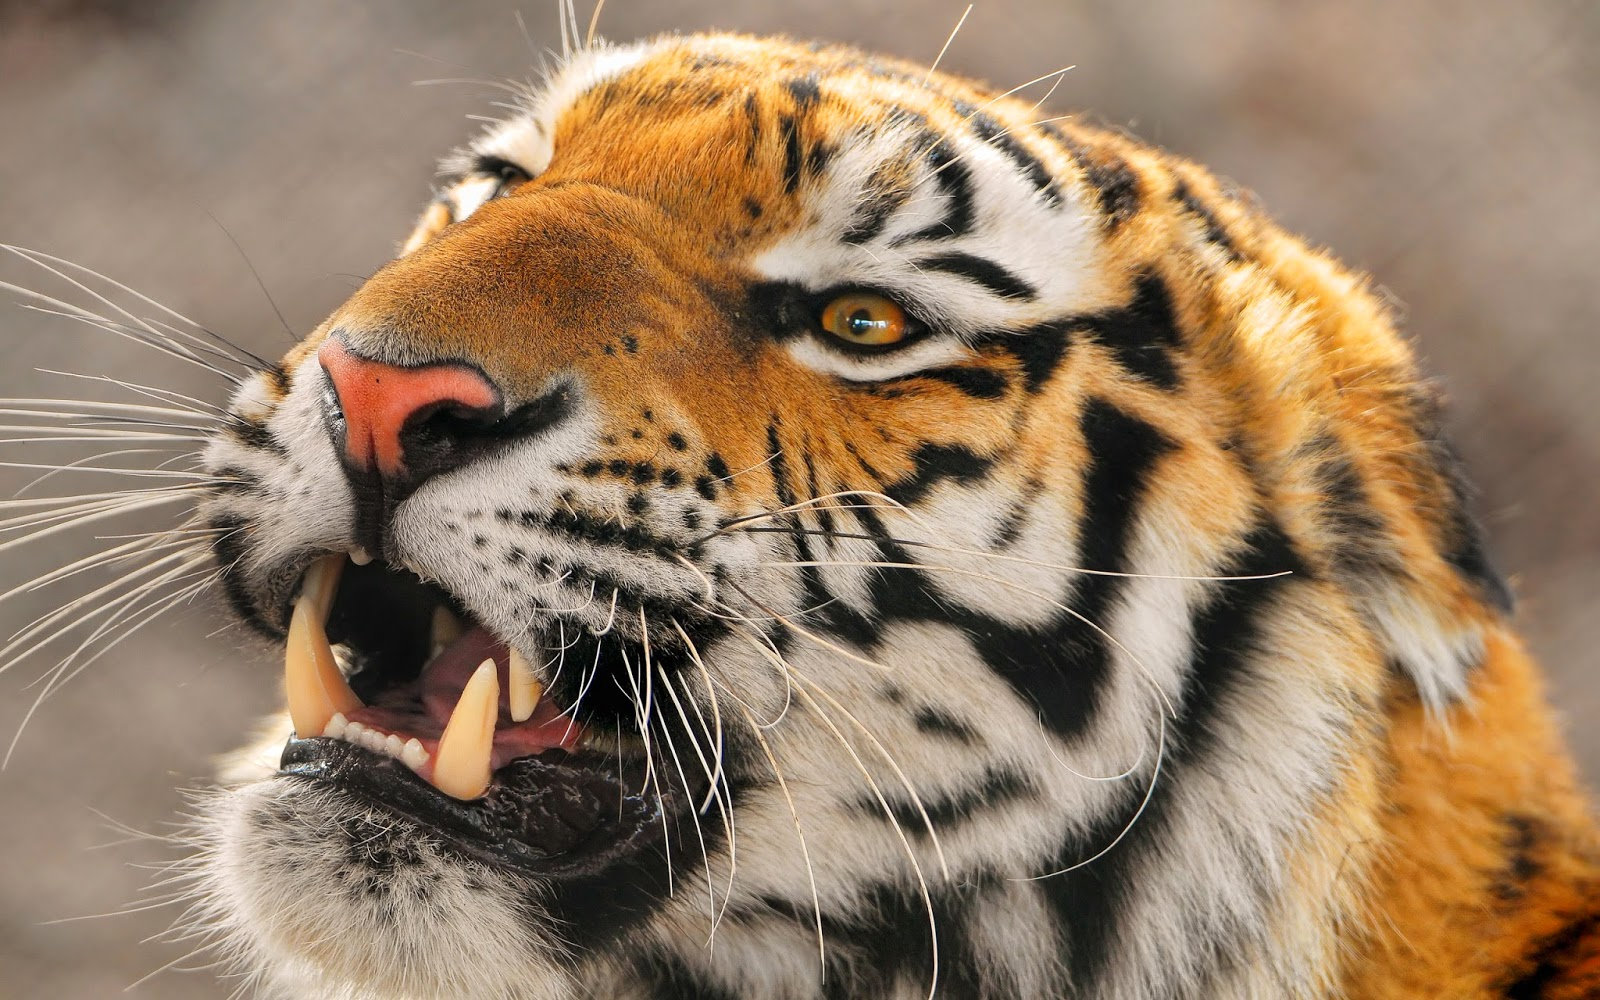 Free Download Desktop Hd Wallpapers Downloads Angry Tiger Hd